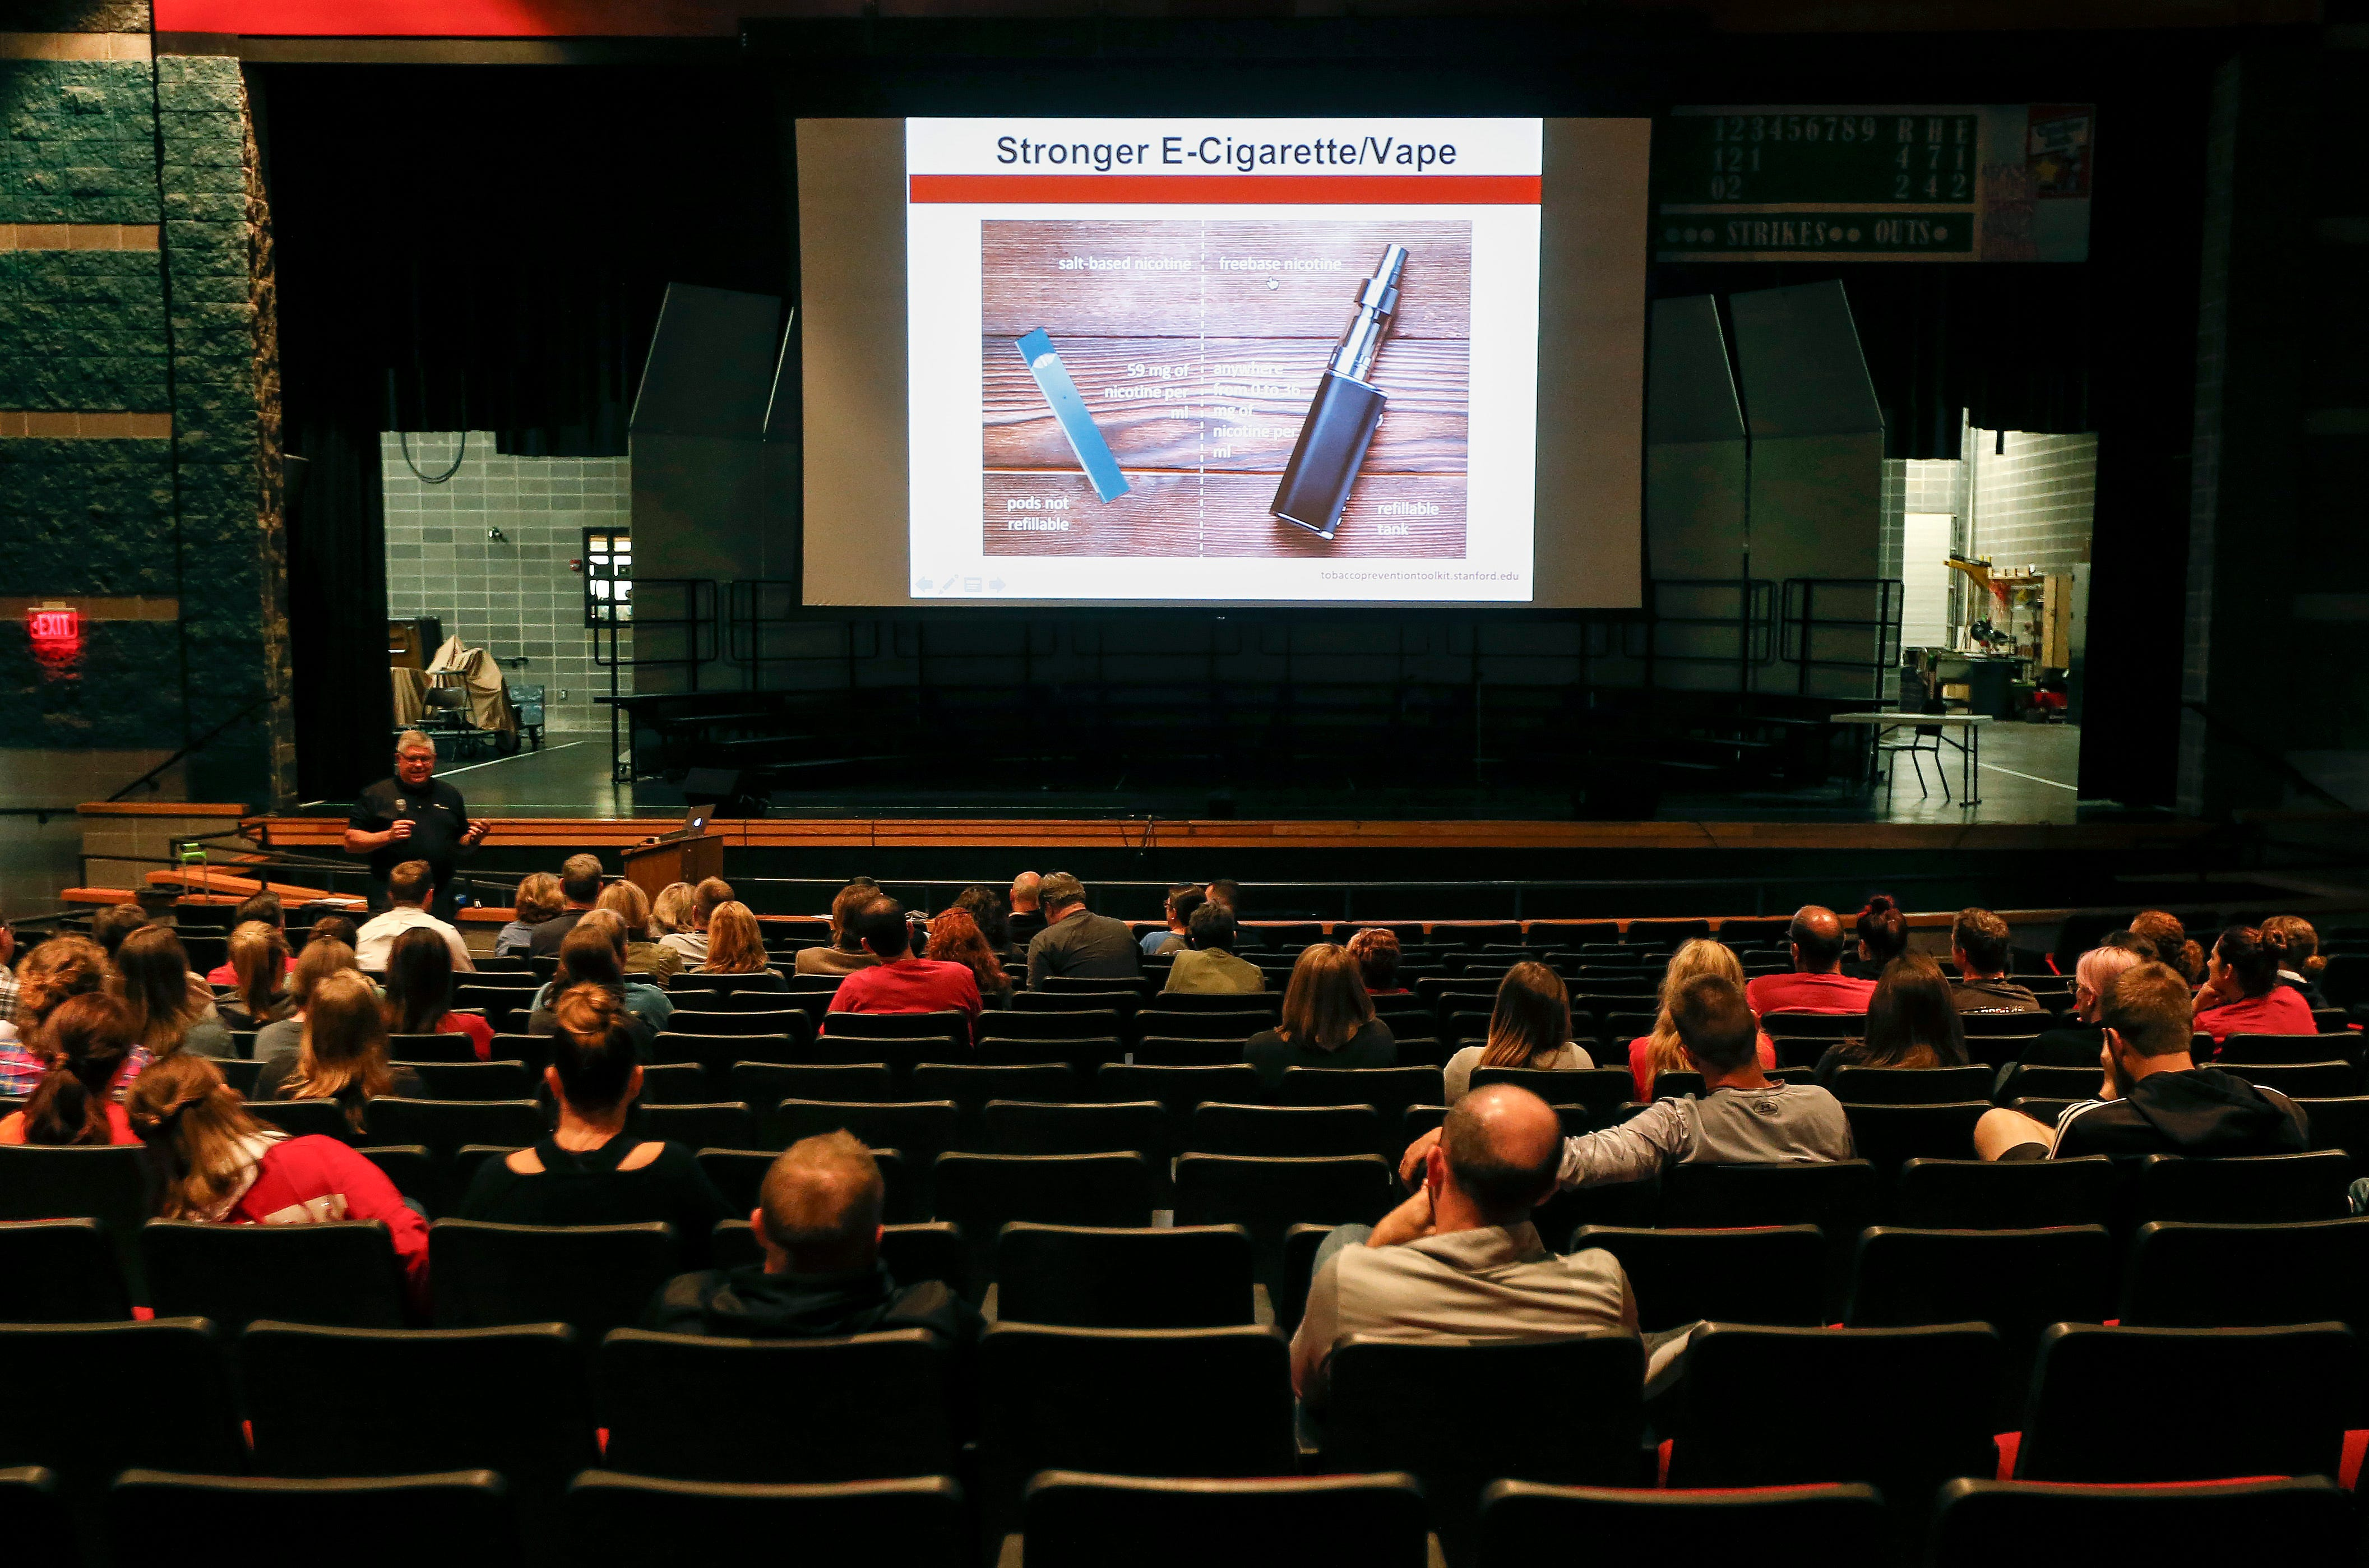 Teachers and staff at Ozark high school listen as Jim Brawner, a smoking cessation expert with CoxHealth, gives a presentation on Juul e-cigarettes on Friday, Oct. 26, 2018.